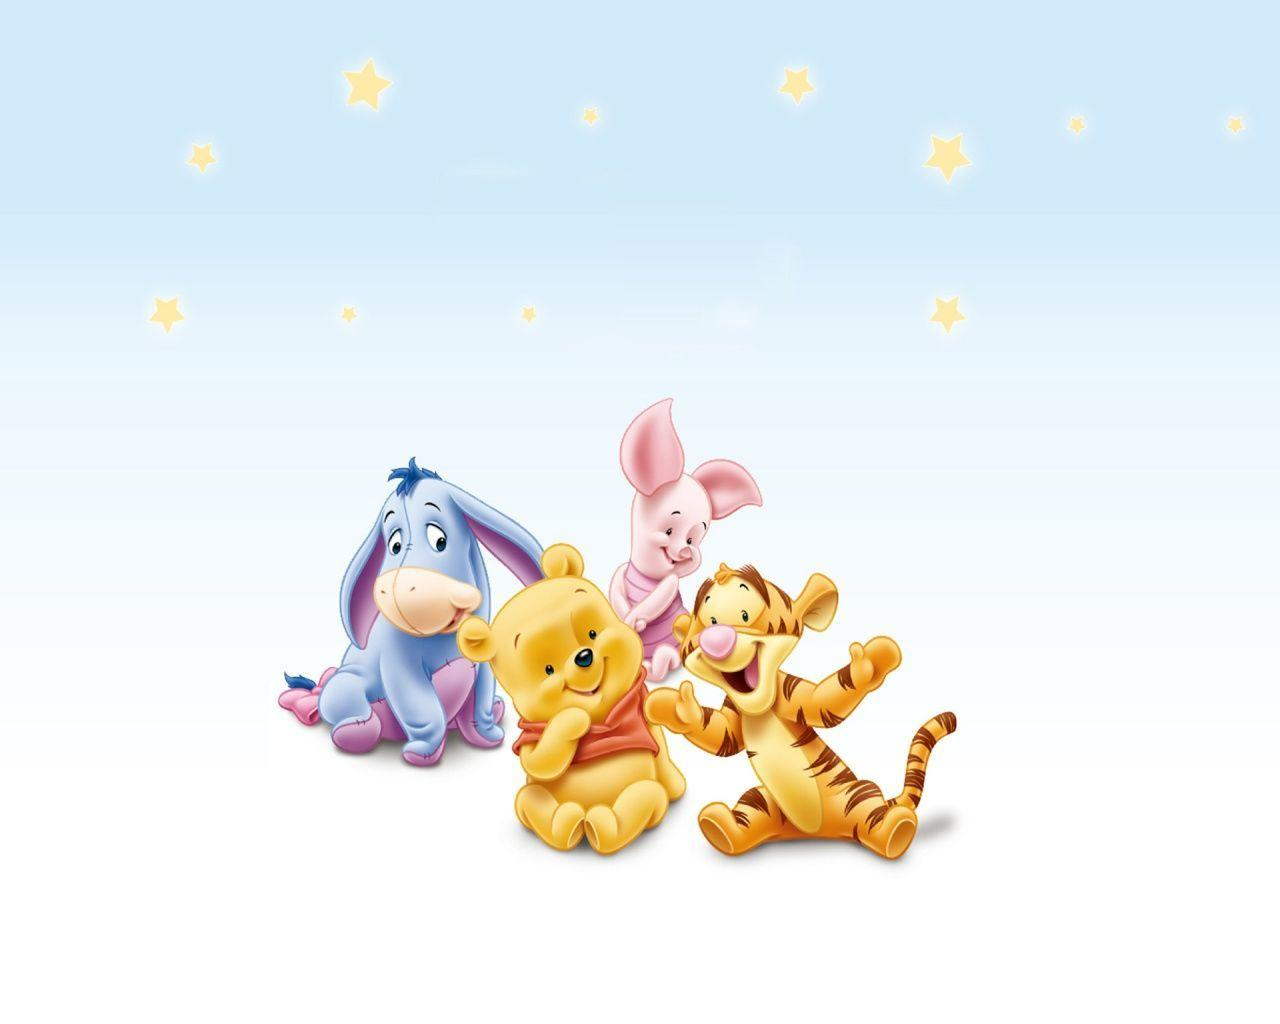 It is a graphic of Exhilarating Baby Winnie the Pooh and Friends